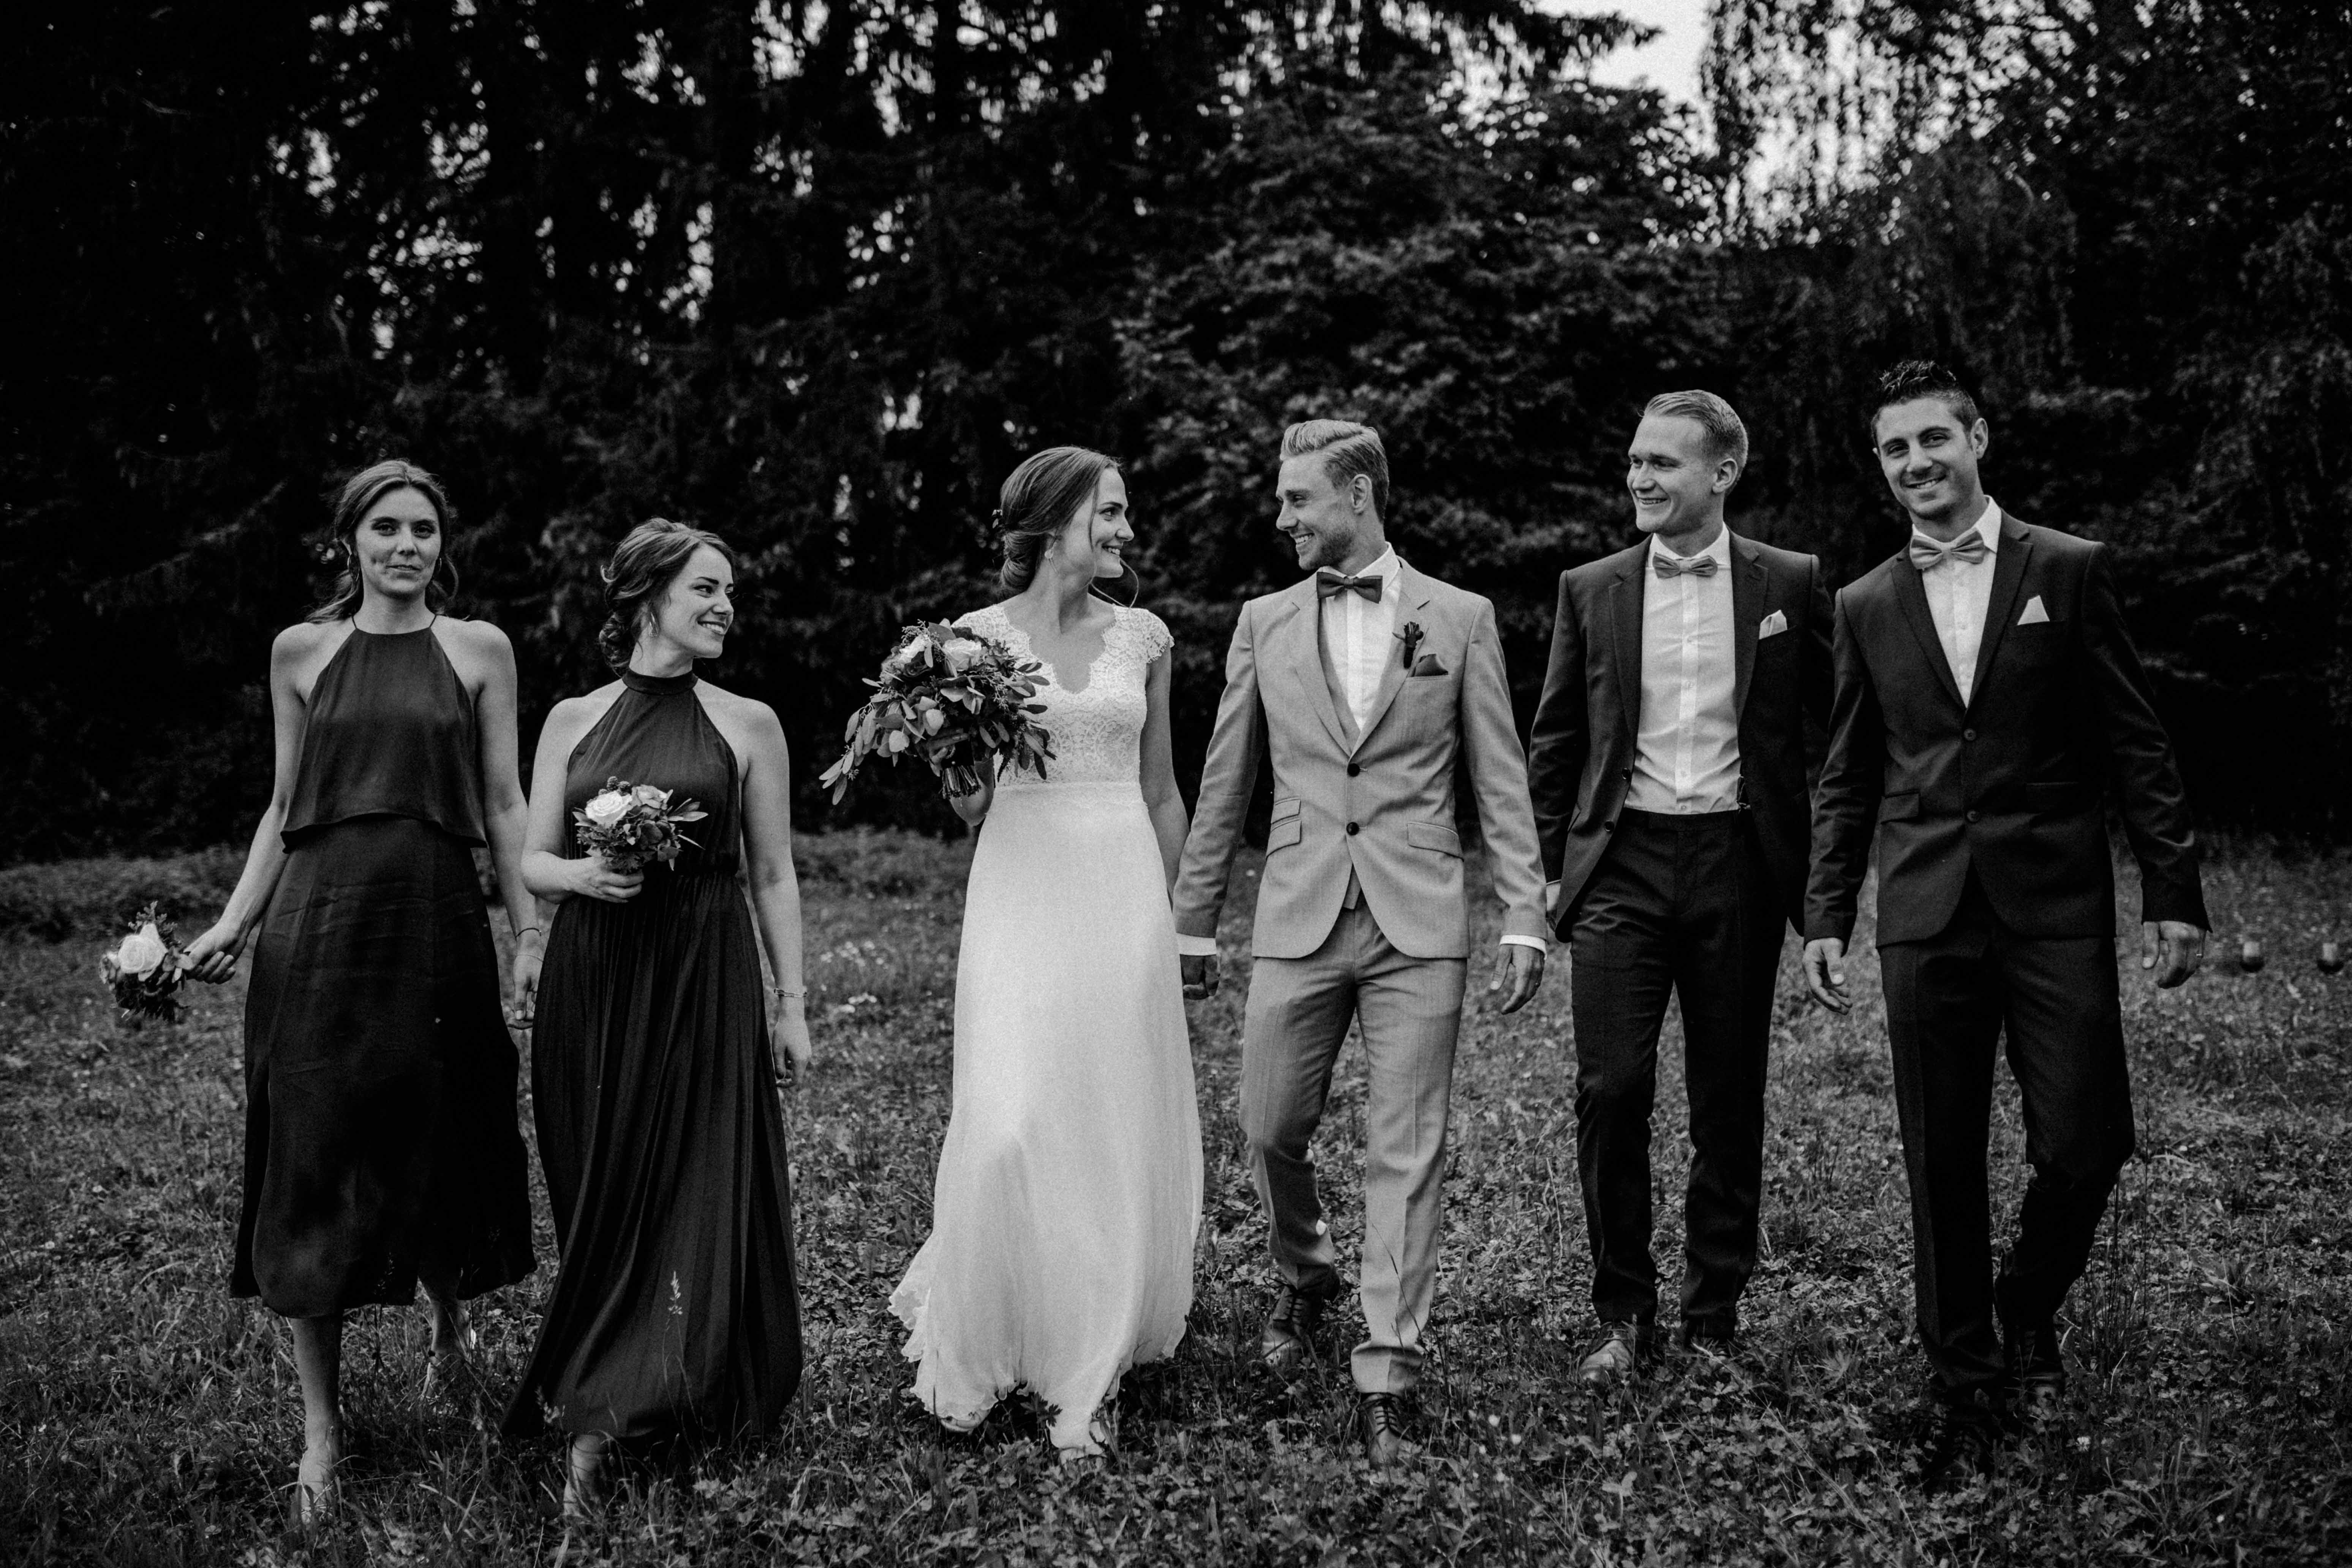 friends squad crew sonja poehlmann photography couples muenchen bayern